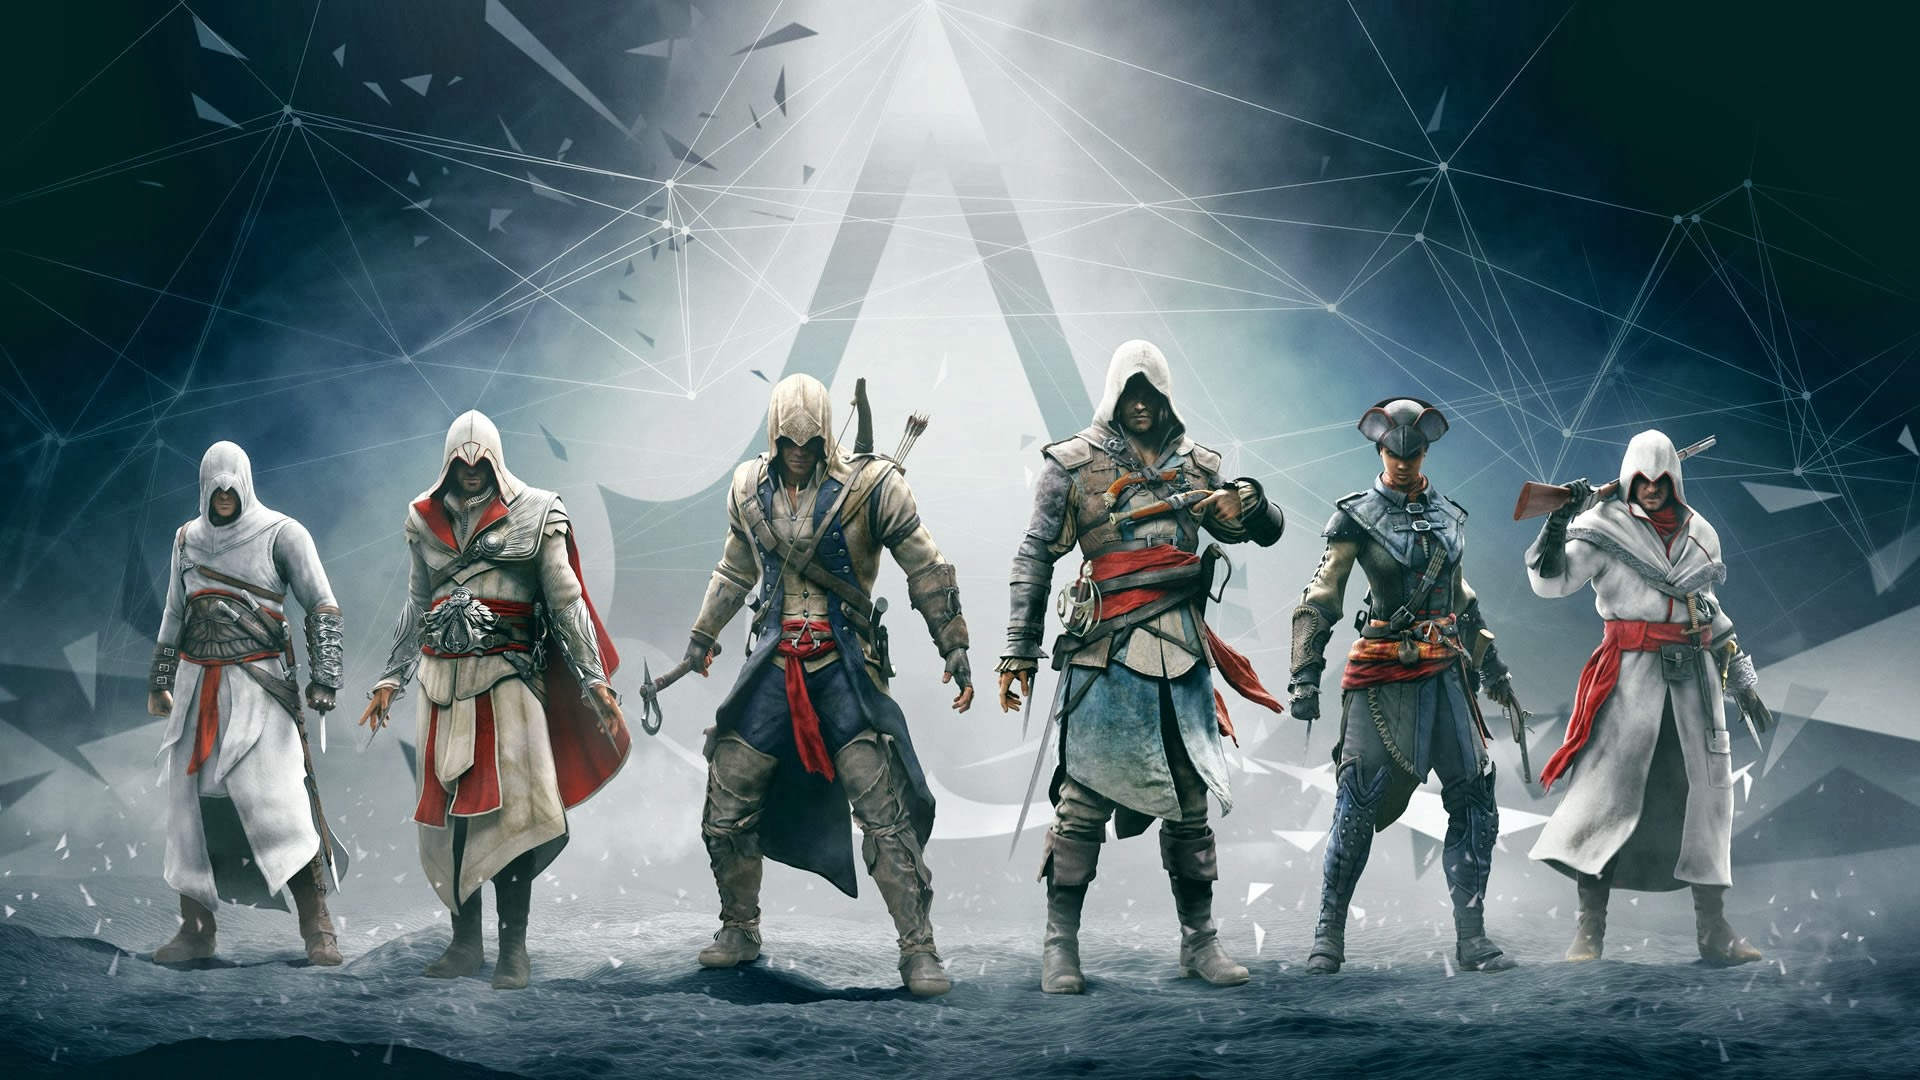 Assassins Creed Altair Ezio Connor Edward Wallpapers HD Wallpapers 1920x1080